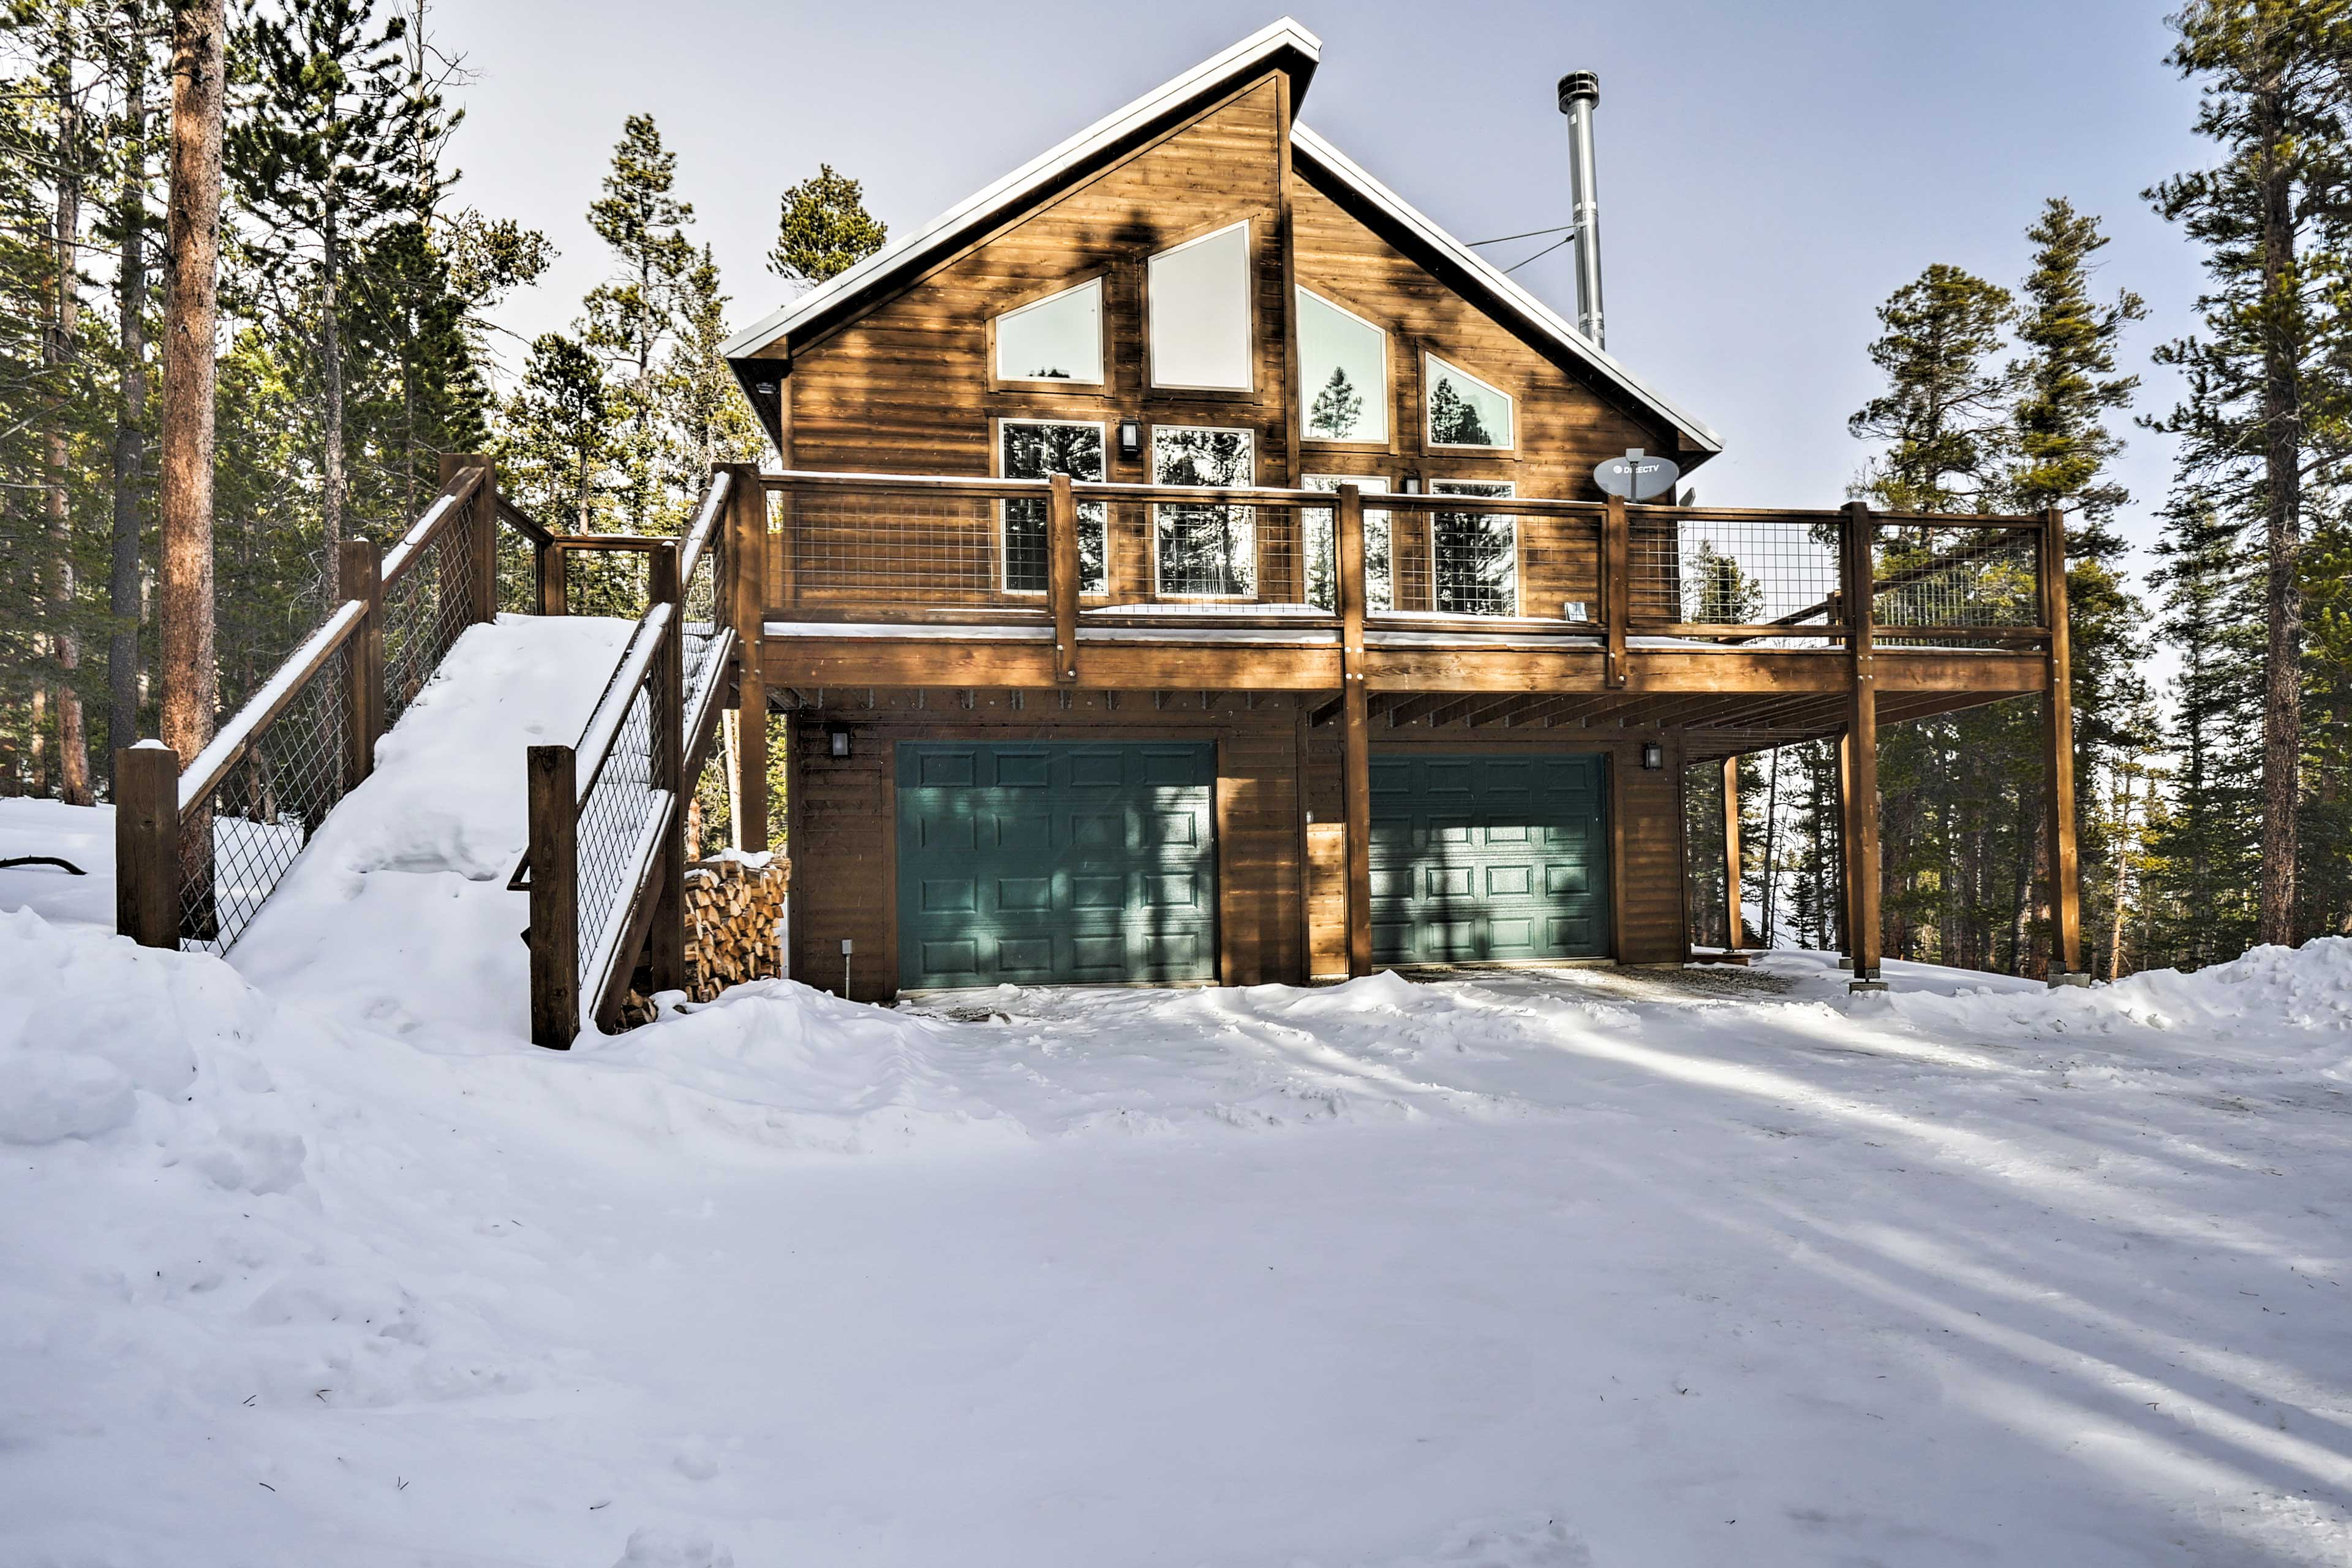 This vacation rental cabin has everything you need for an ideal getaway.